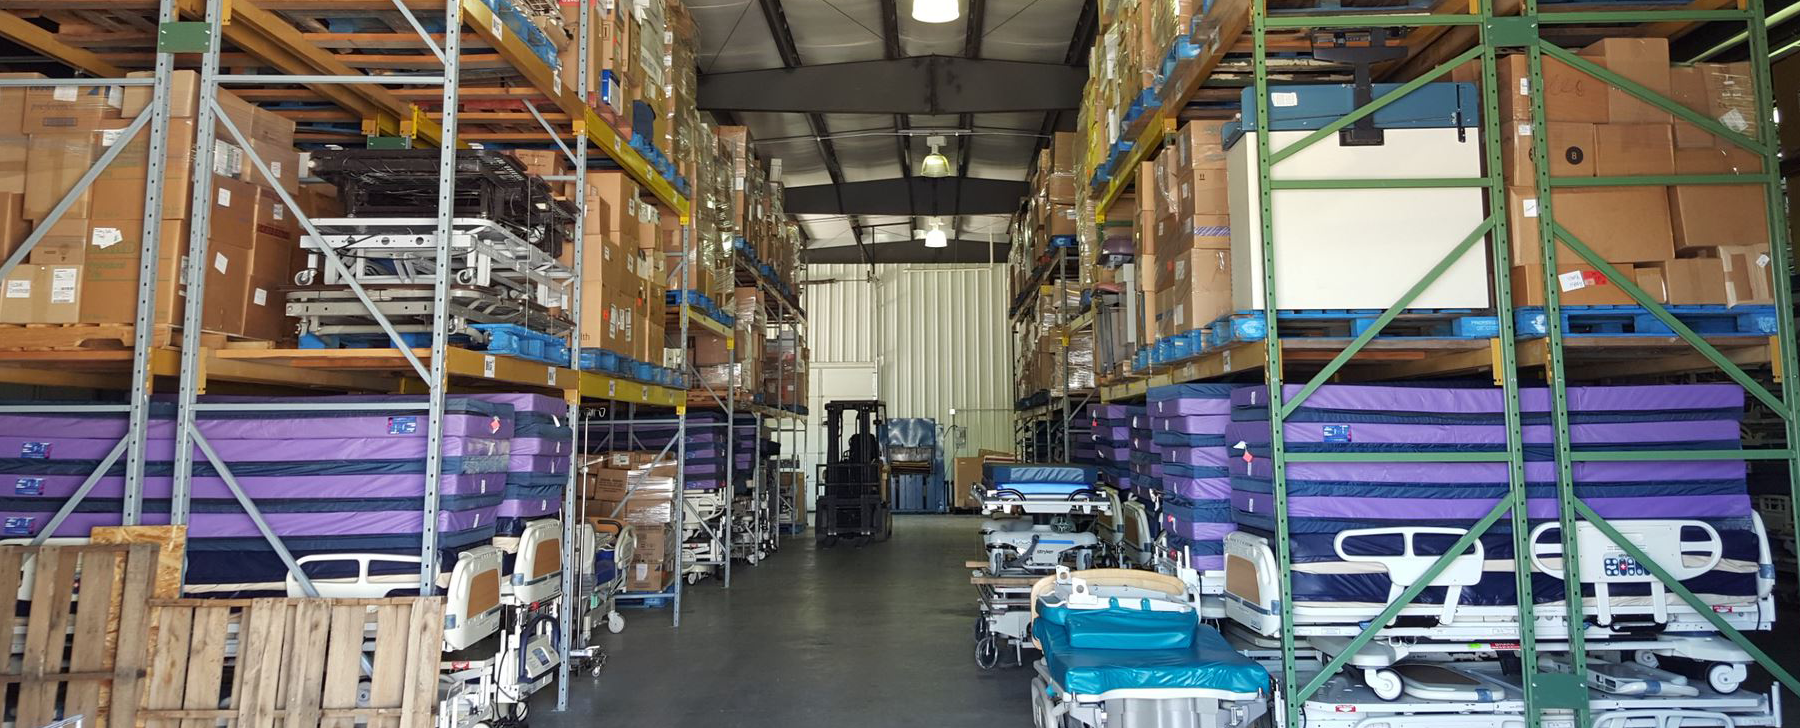 Franciscan Mission Warehouse